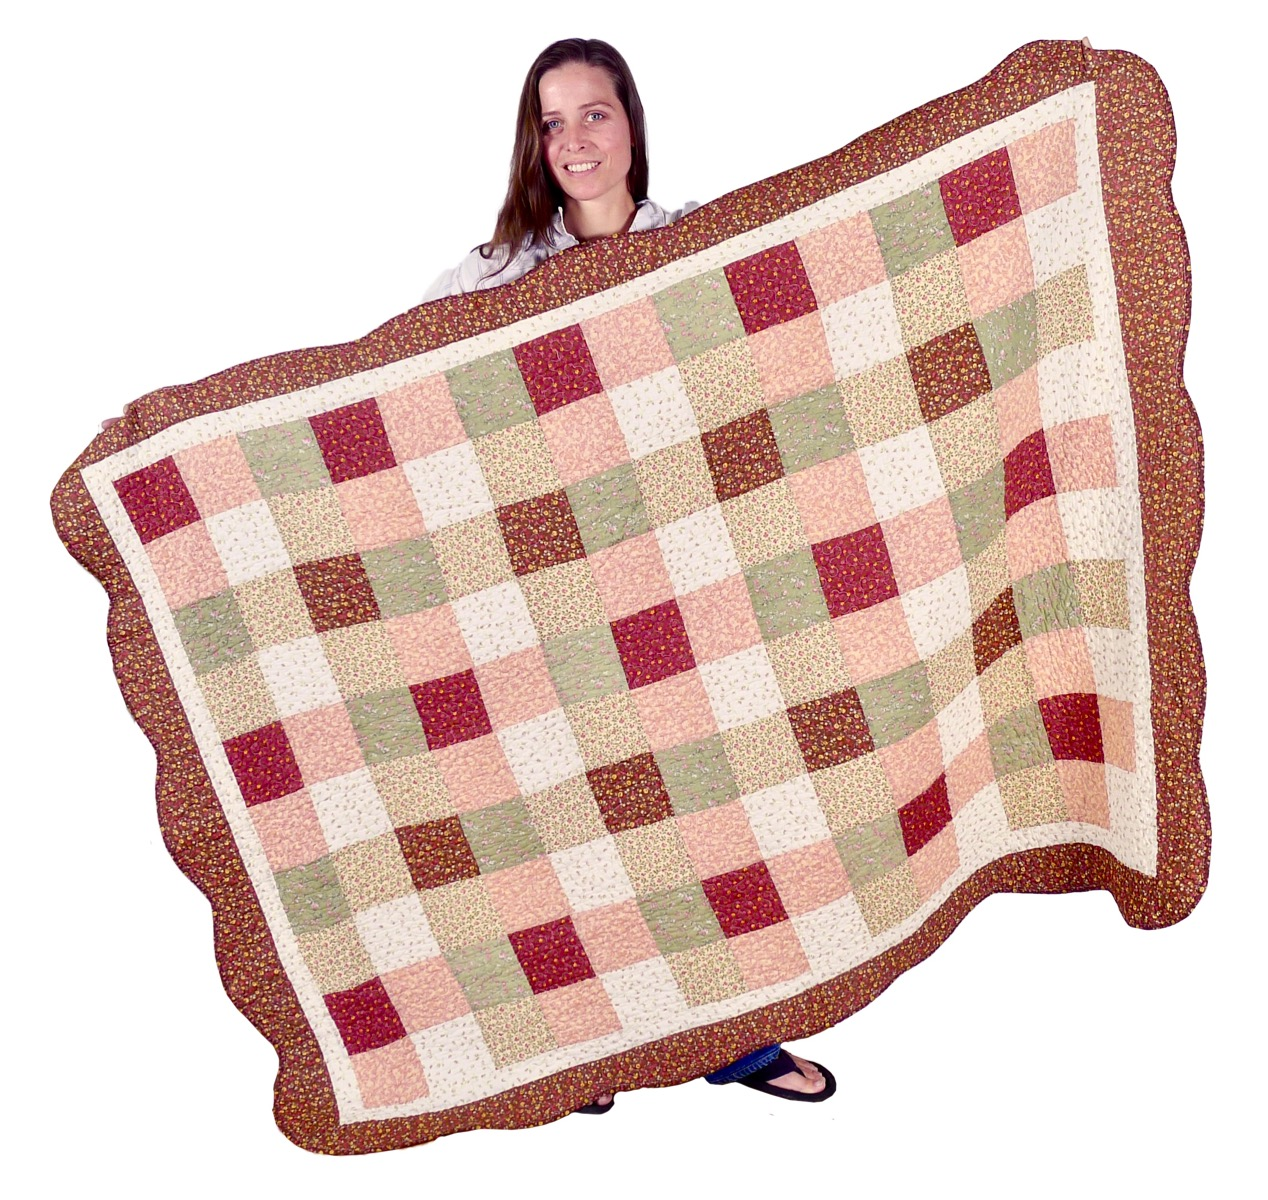 Image of Patchwork Quilted Sofa Throw 53x70-Inch - Harvest Squares